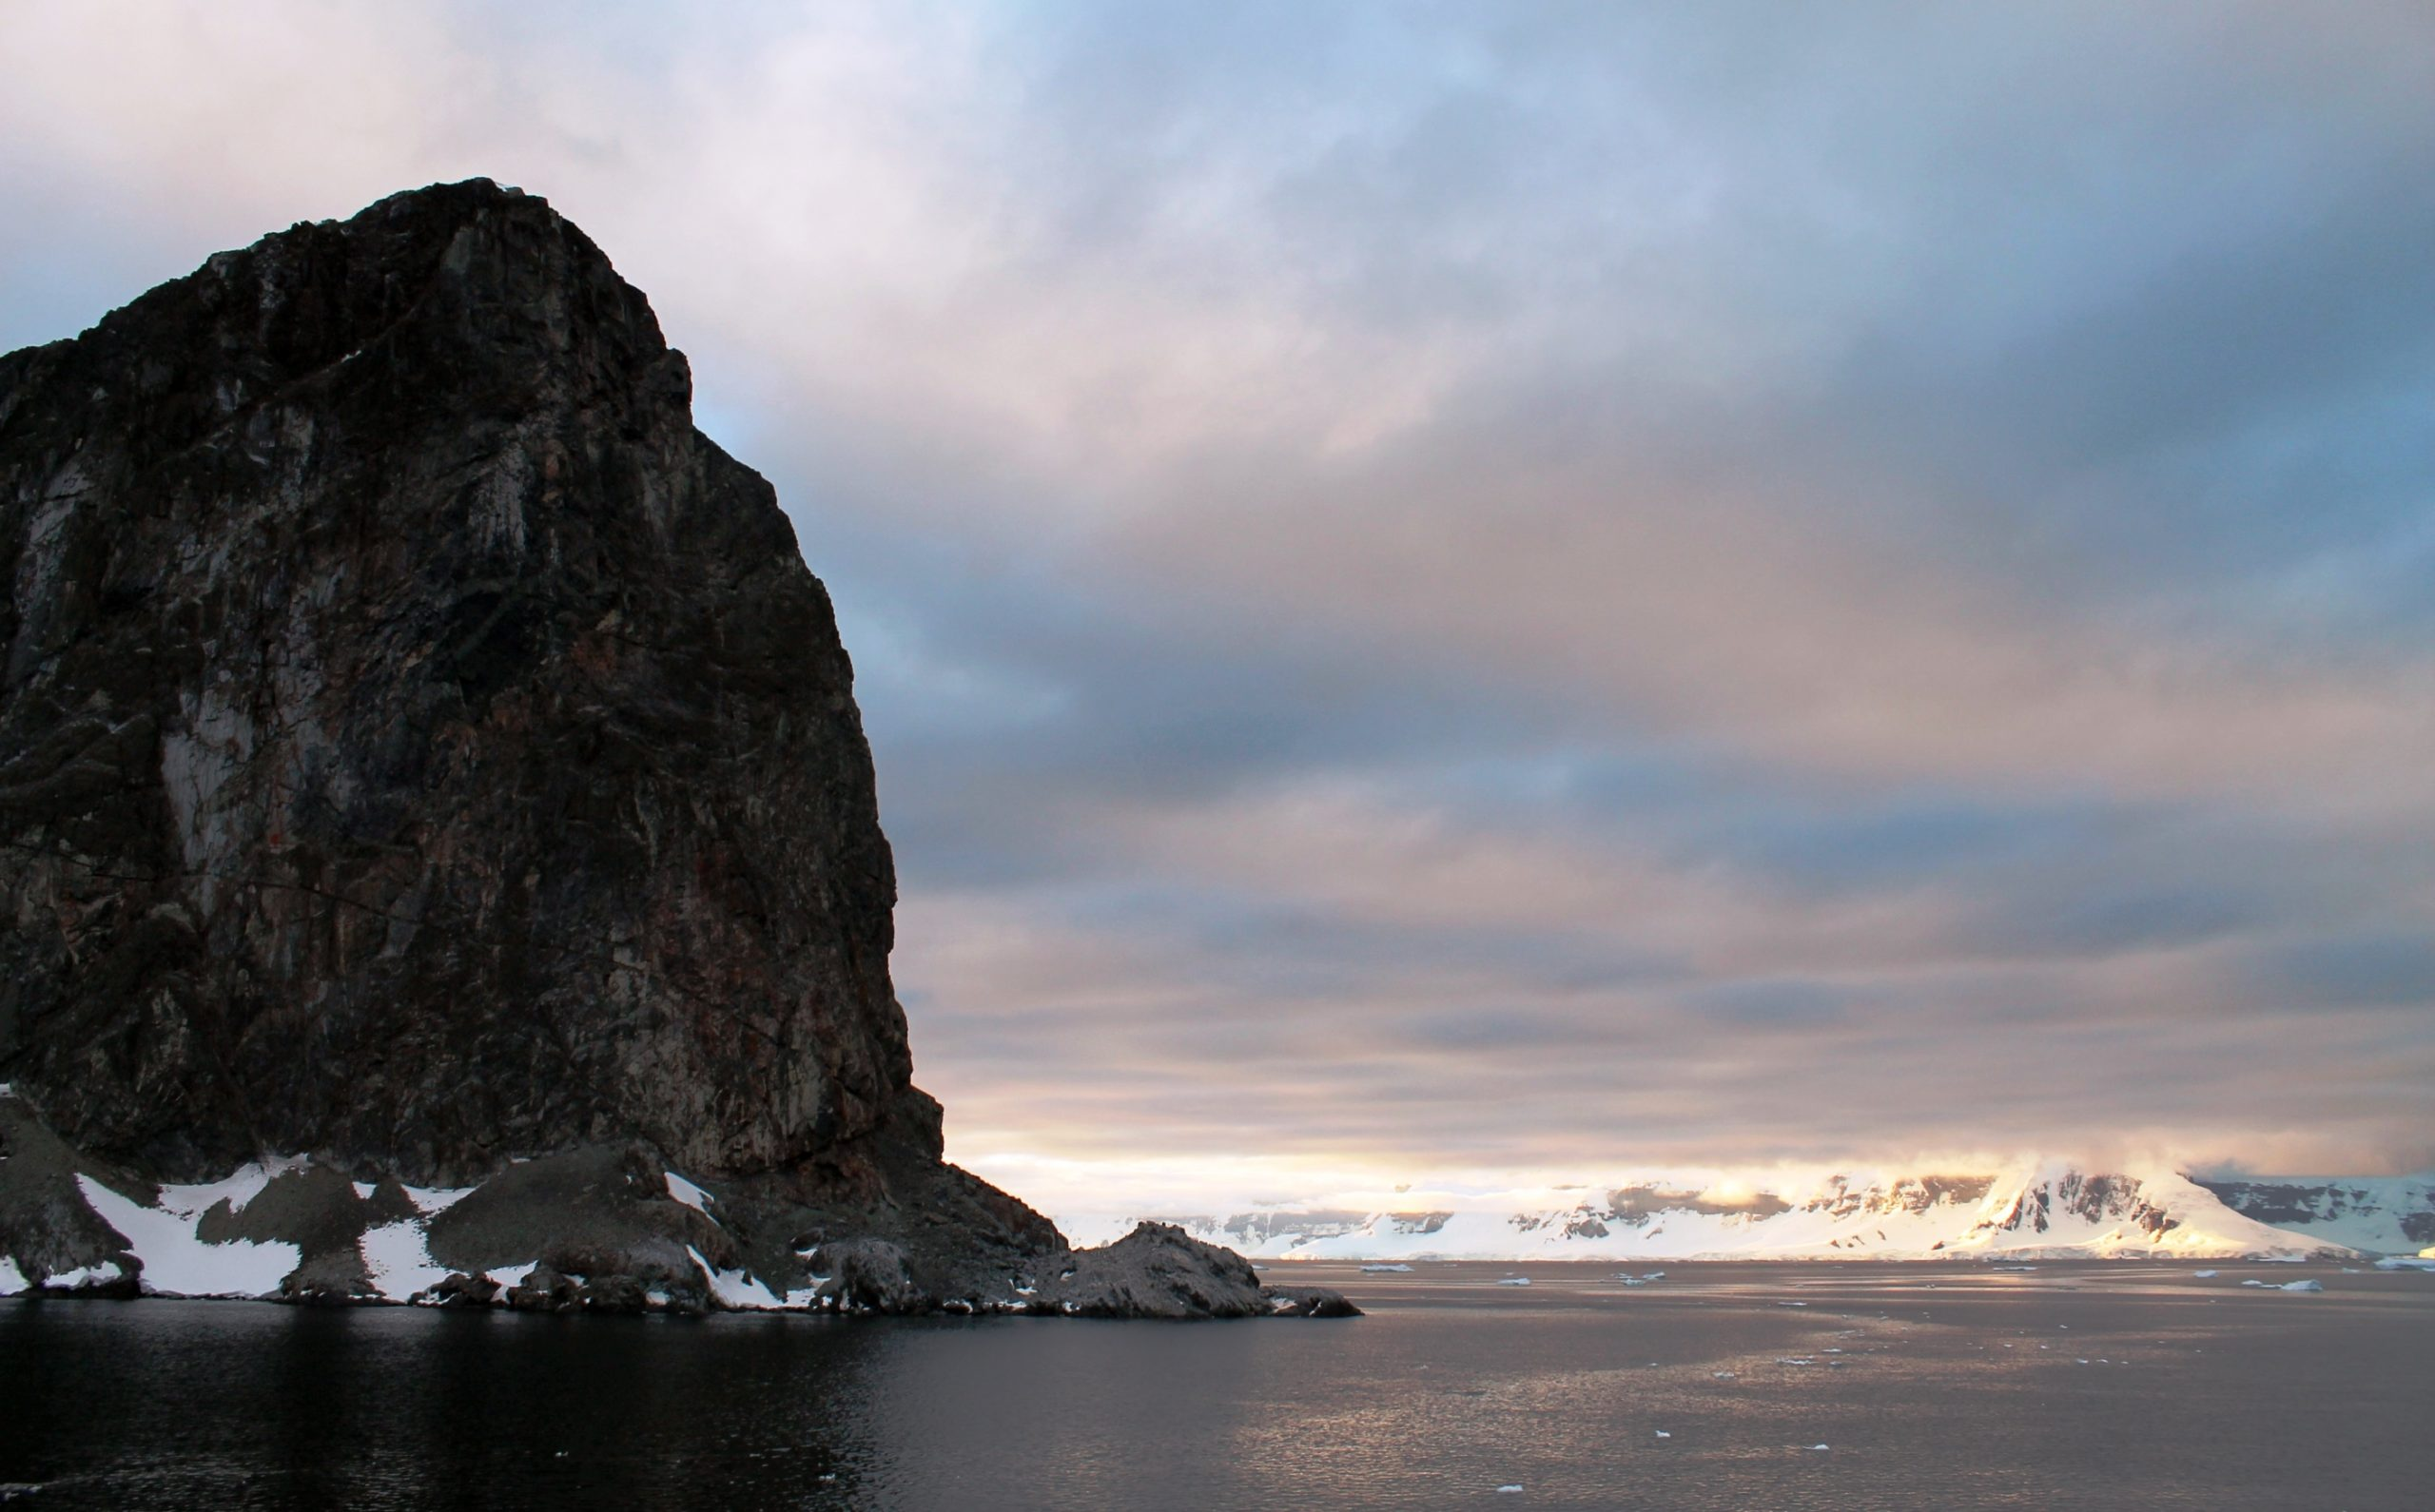 Antarctic Explorer – Day 6: Danco Island & Orne Harbour